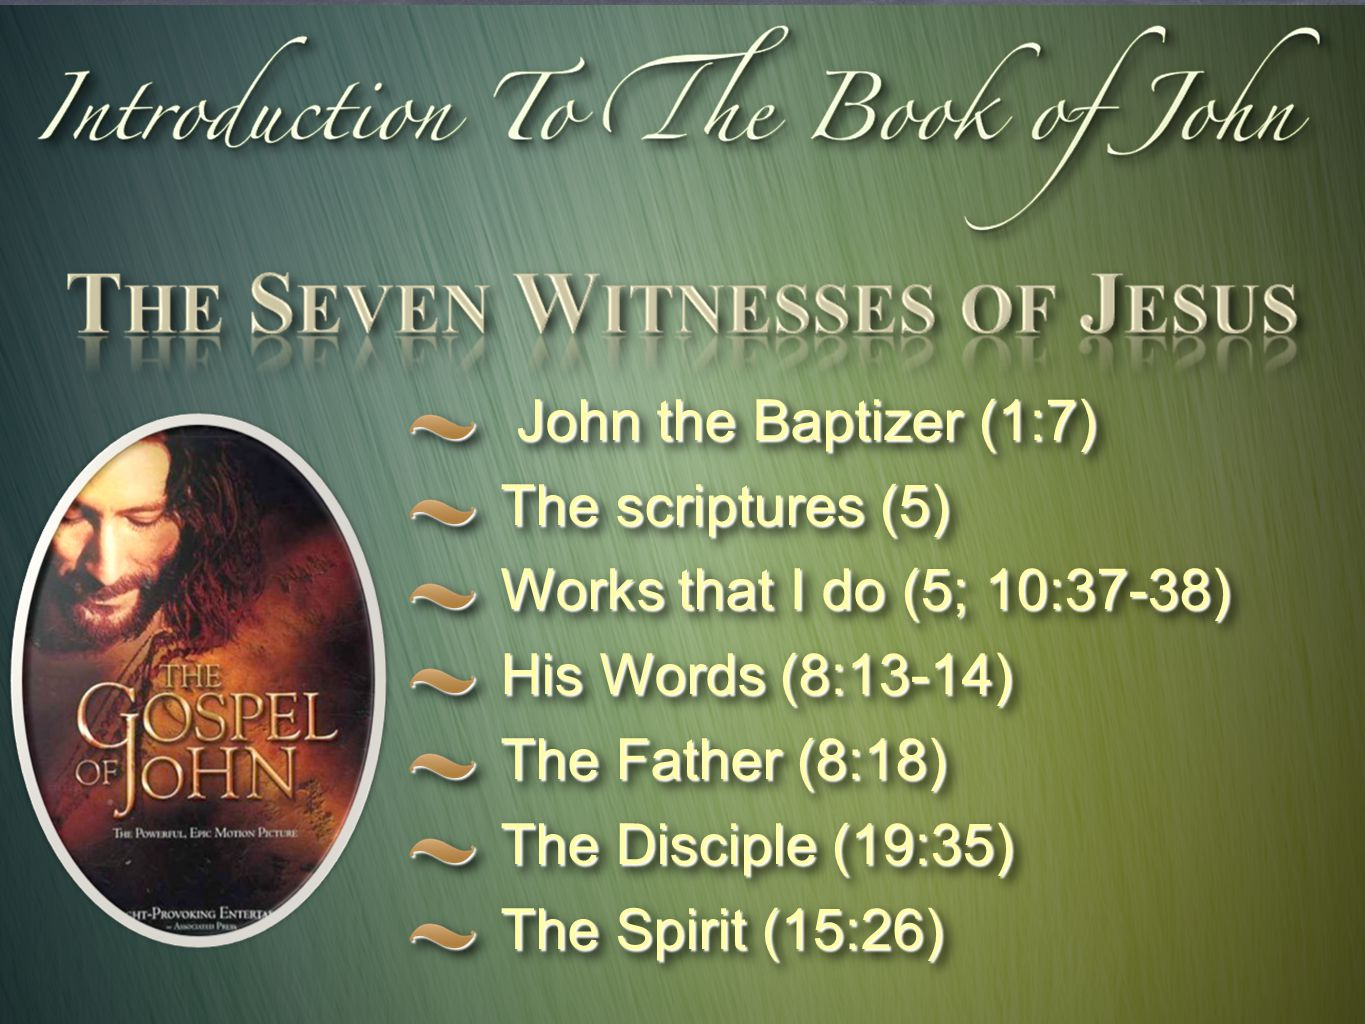 John the Baptizer (1:7) John the Baptizer (1:7) The scriptures (5) Works that I do (5; 10:37-38) His Words (8:13-14) The Father (8:18) The Disciple (19:35) The Spirit (15:26) John the Baptizer (1:7) John the Baptizer (1:7) The scriptures (5) Works that I do (5; 10:37-38) His Words (8:13-14) The Father (8:18) The Disciple (19:35) The Spirit (15:26)